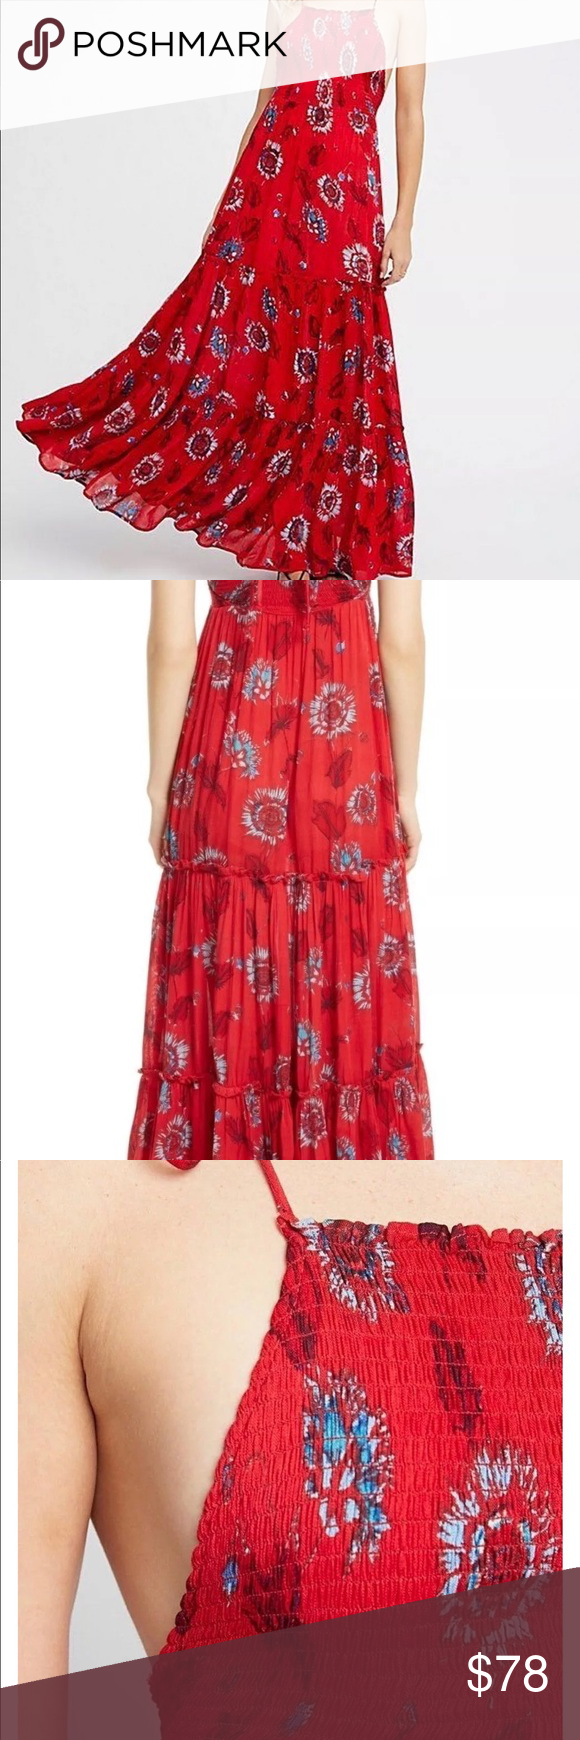 442c11ecdf7 Free people Garden Party Maxi Dress Celebrate among the azaleas and roses  with the Free People